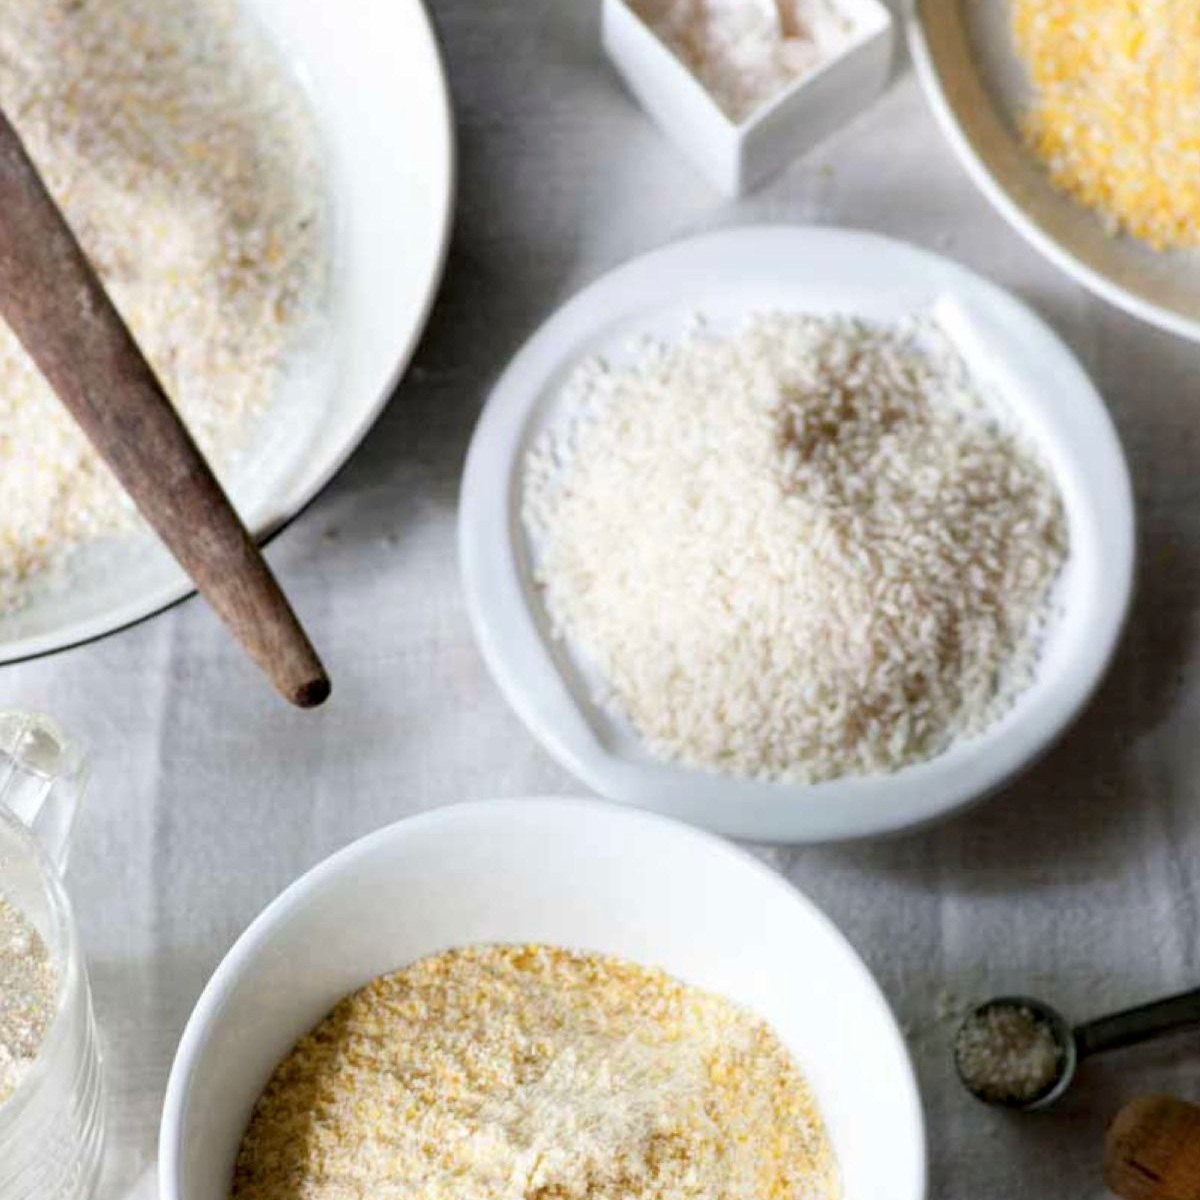 grits+and+corn+meal.jpg